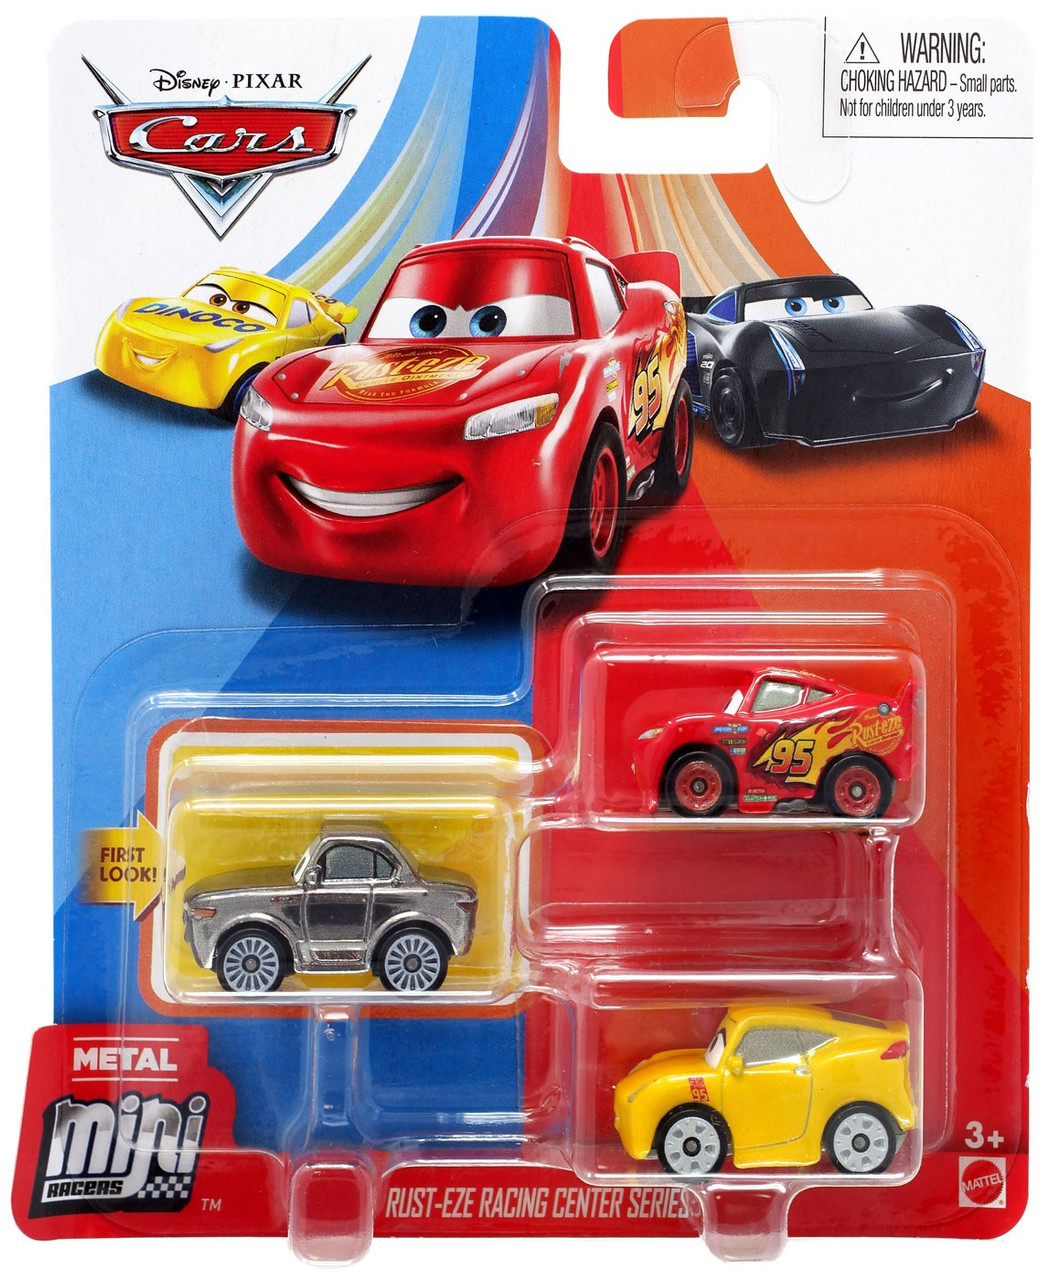 Disney Pixar Cars Die Cast Metal Mini Racers Rust Eze Racing